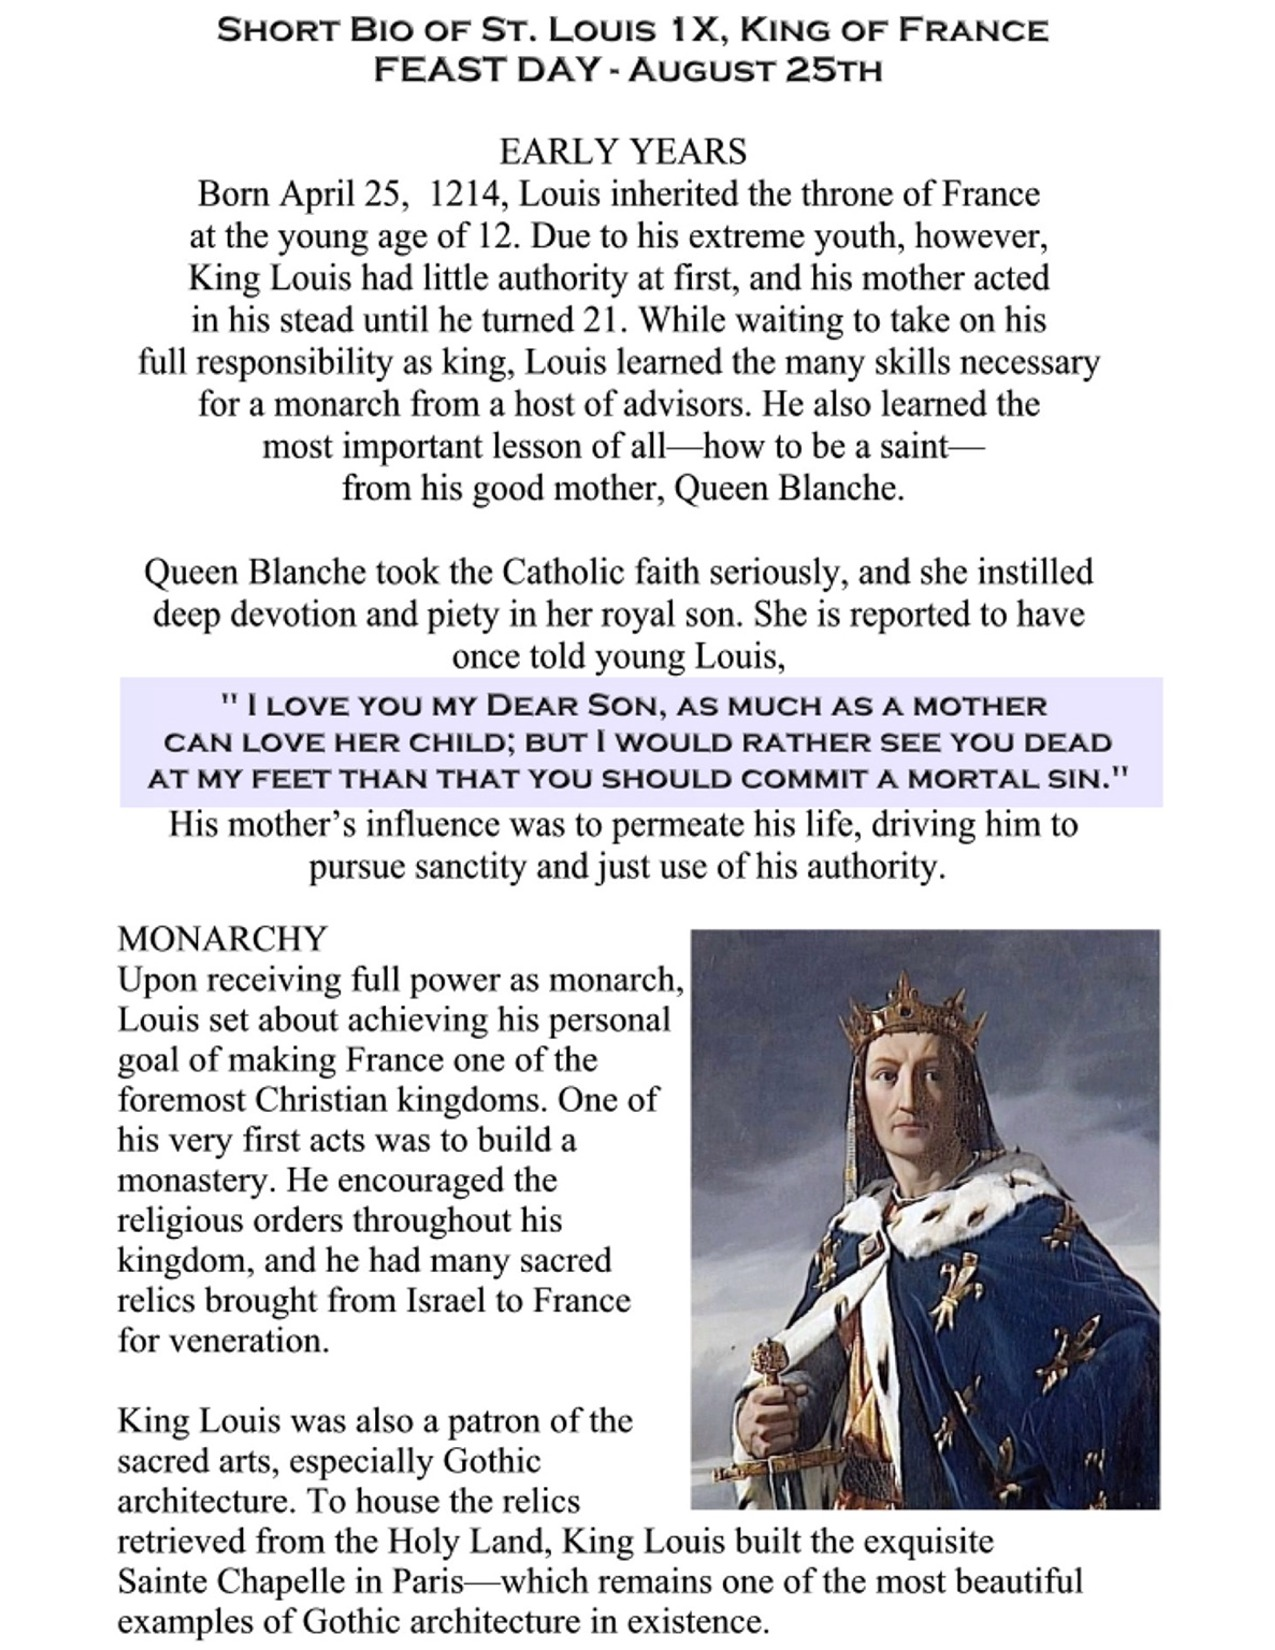 Saint Louis King of France pg 2 8.5 by 11